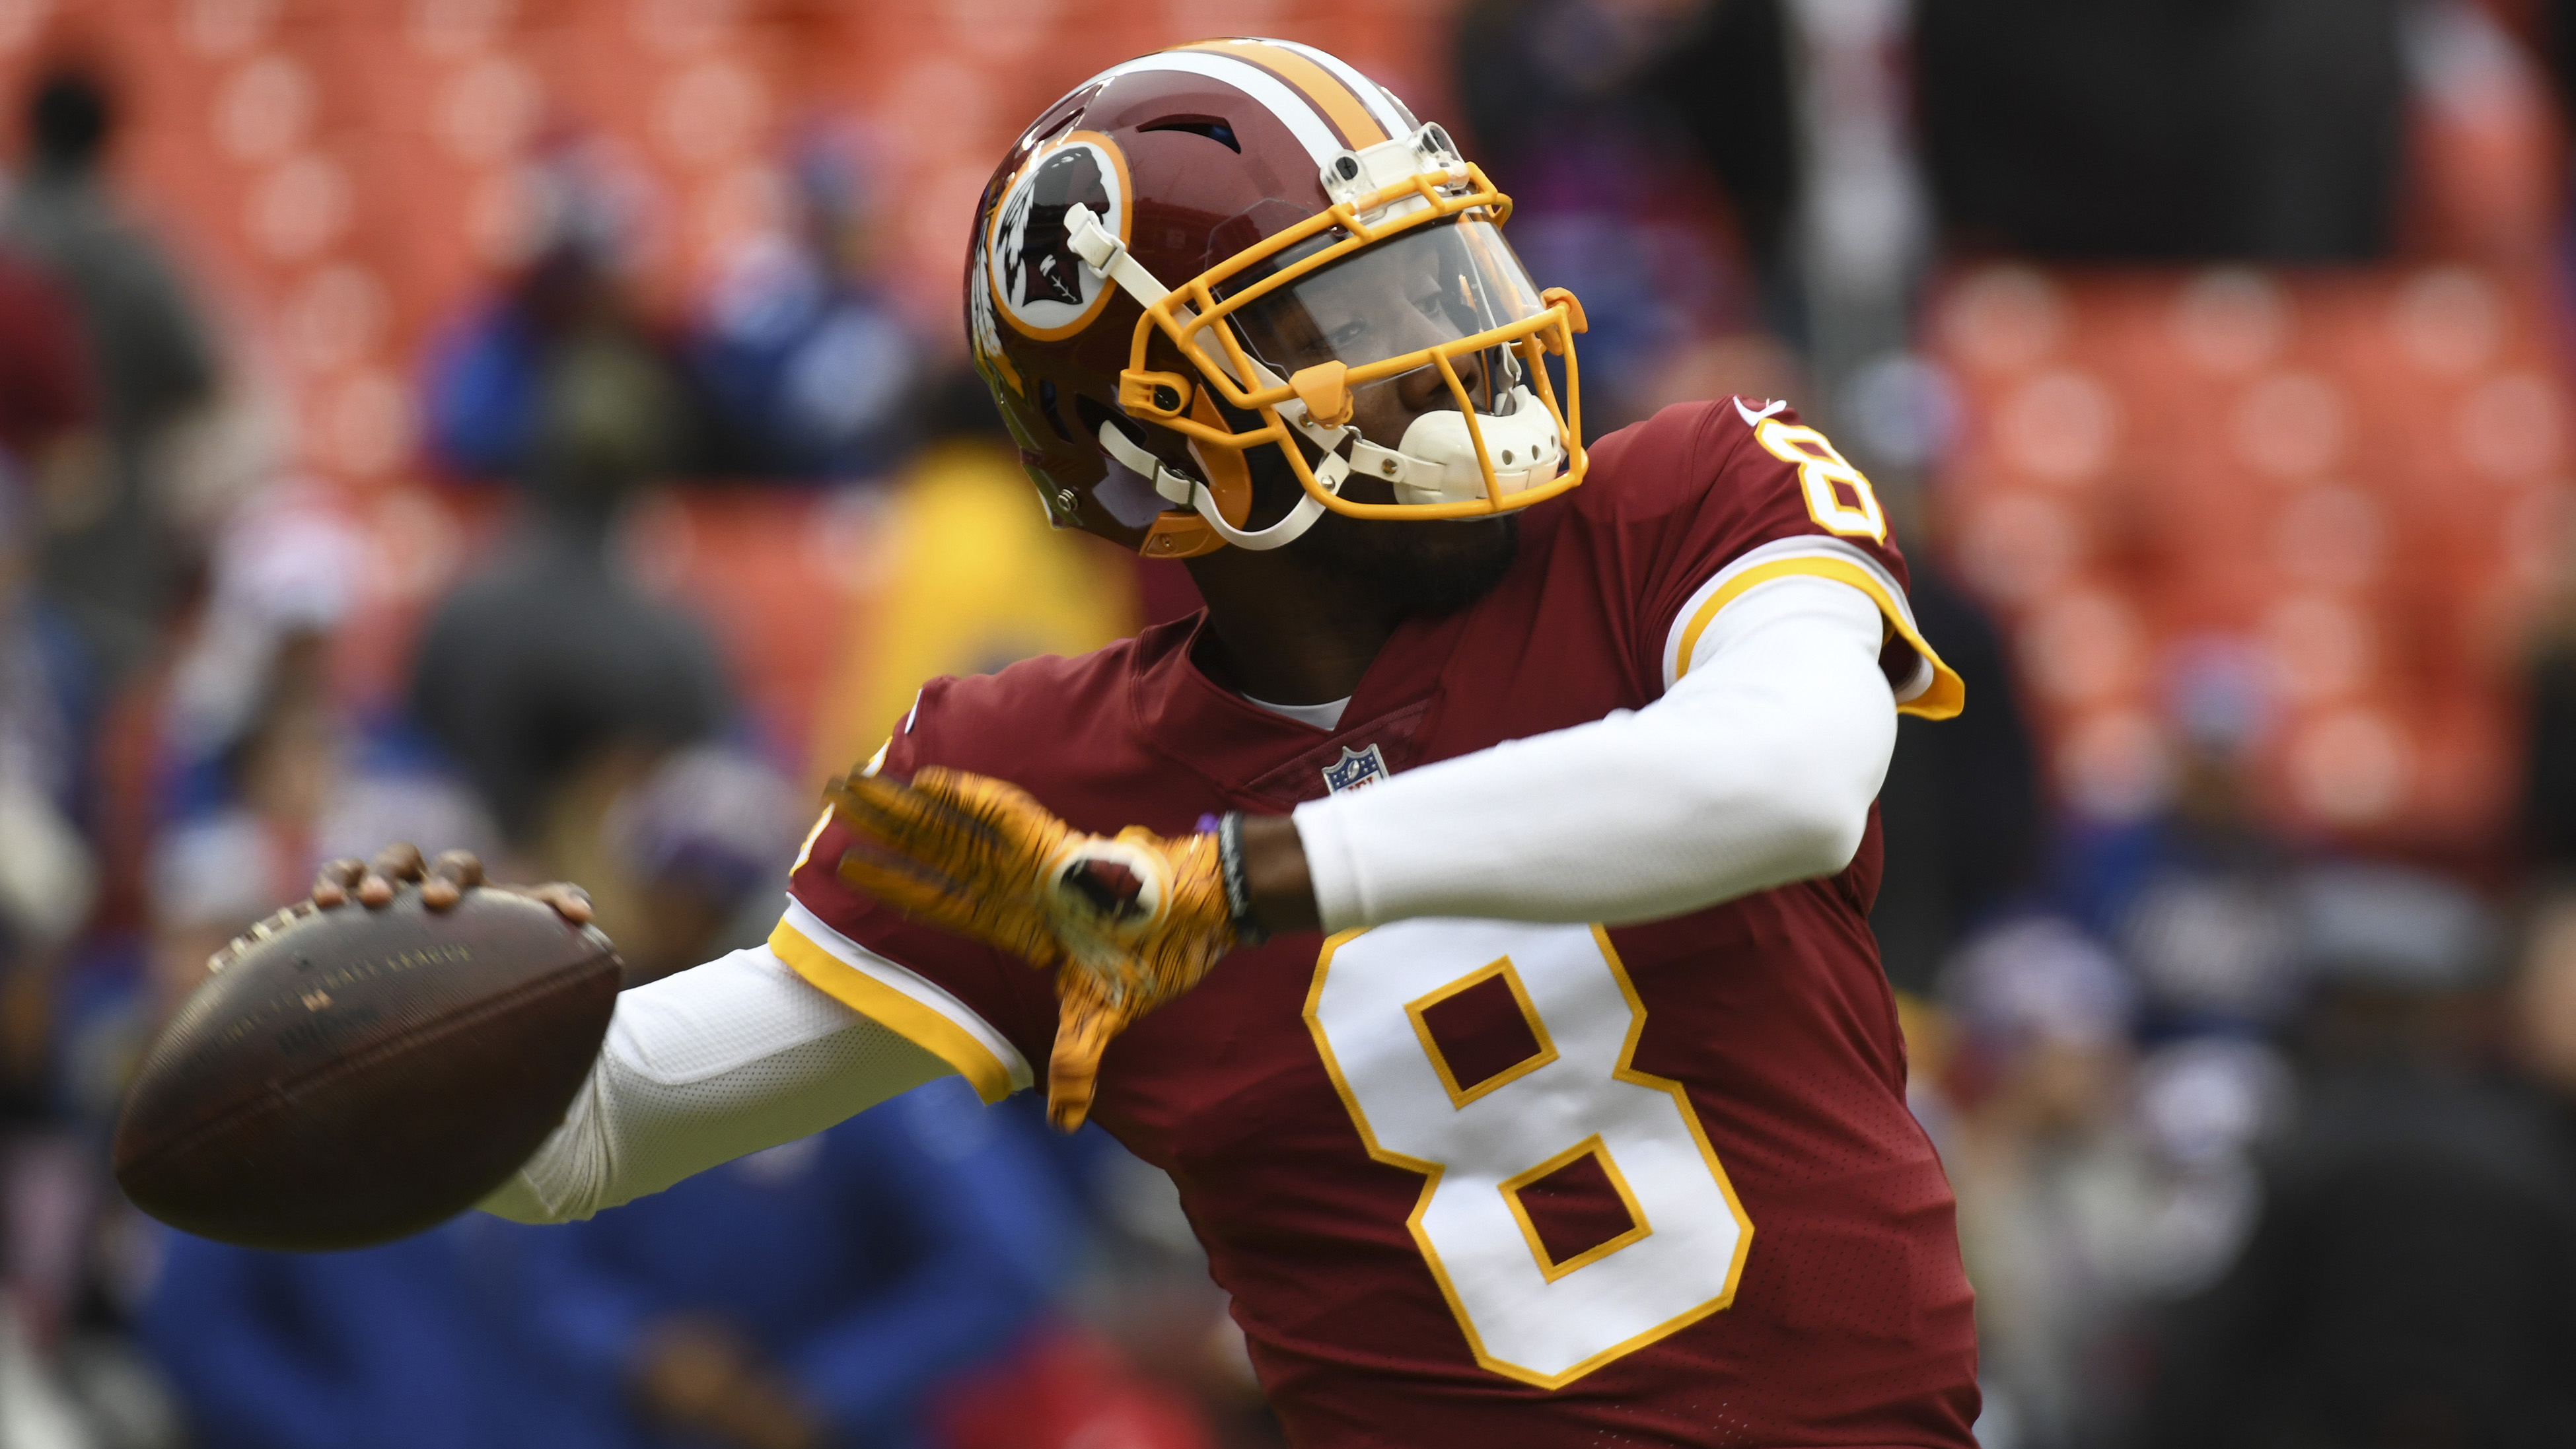 Josh Johnson Redskins Qb Plays Madden To Learn Teammates Names